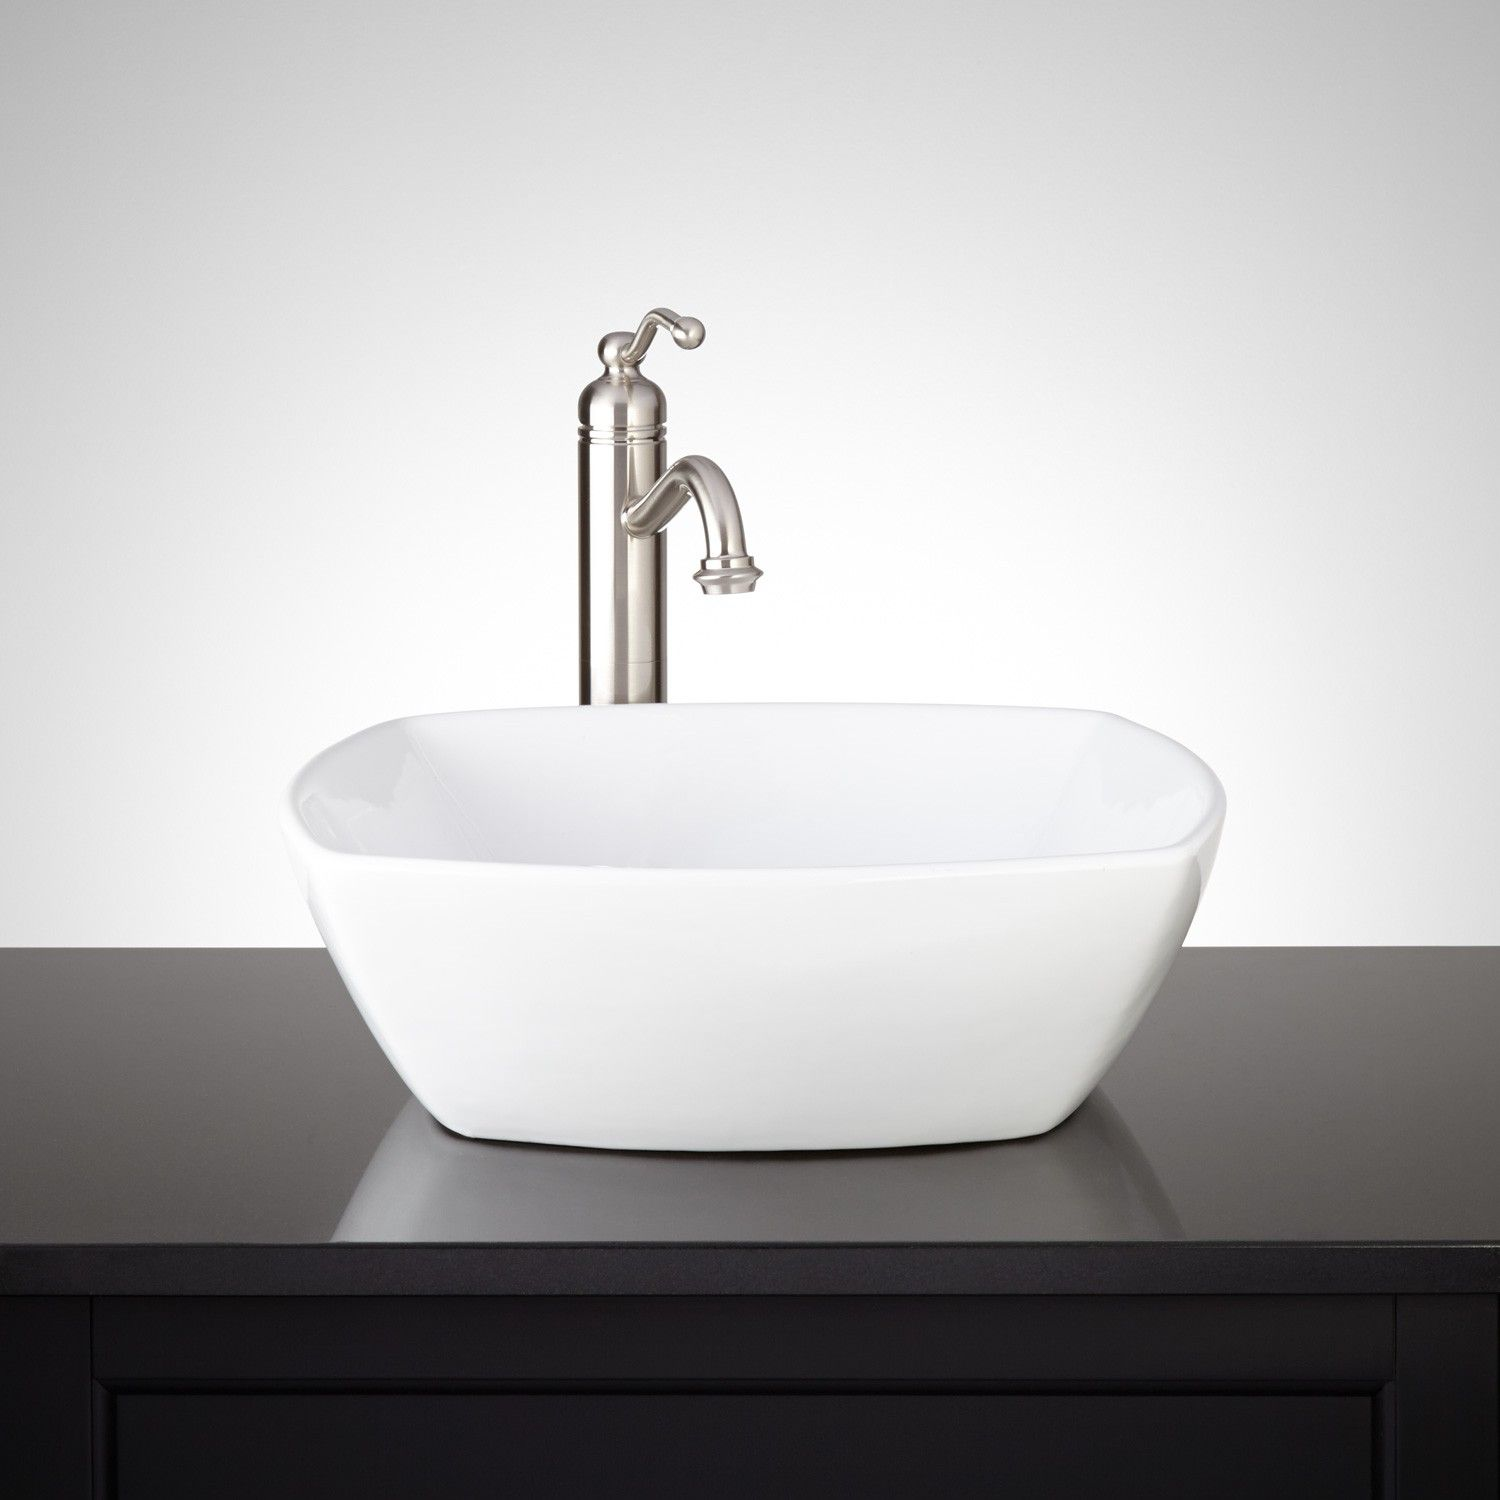 fixtures vessel bathroom reviews modern improvement ceramic sink oval fine sinks pdx home wayfair